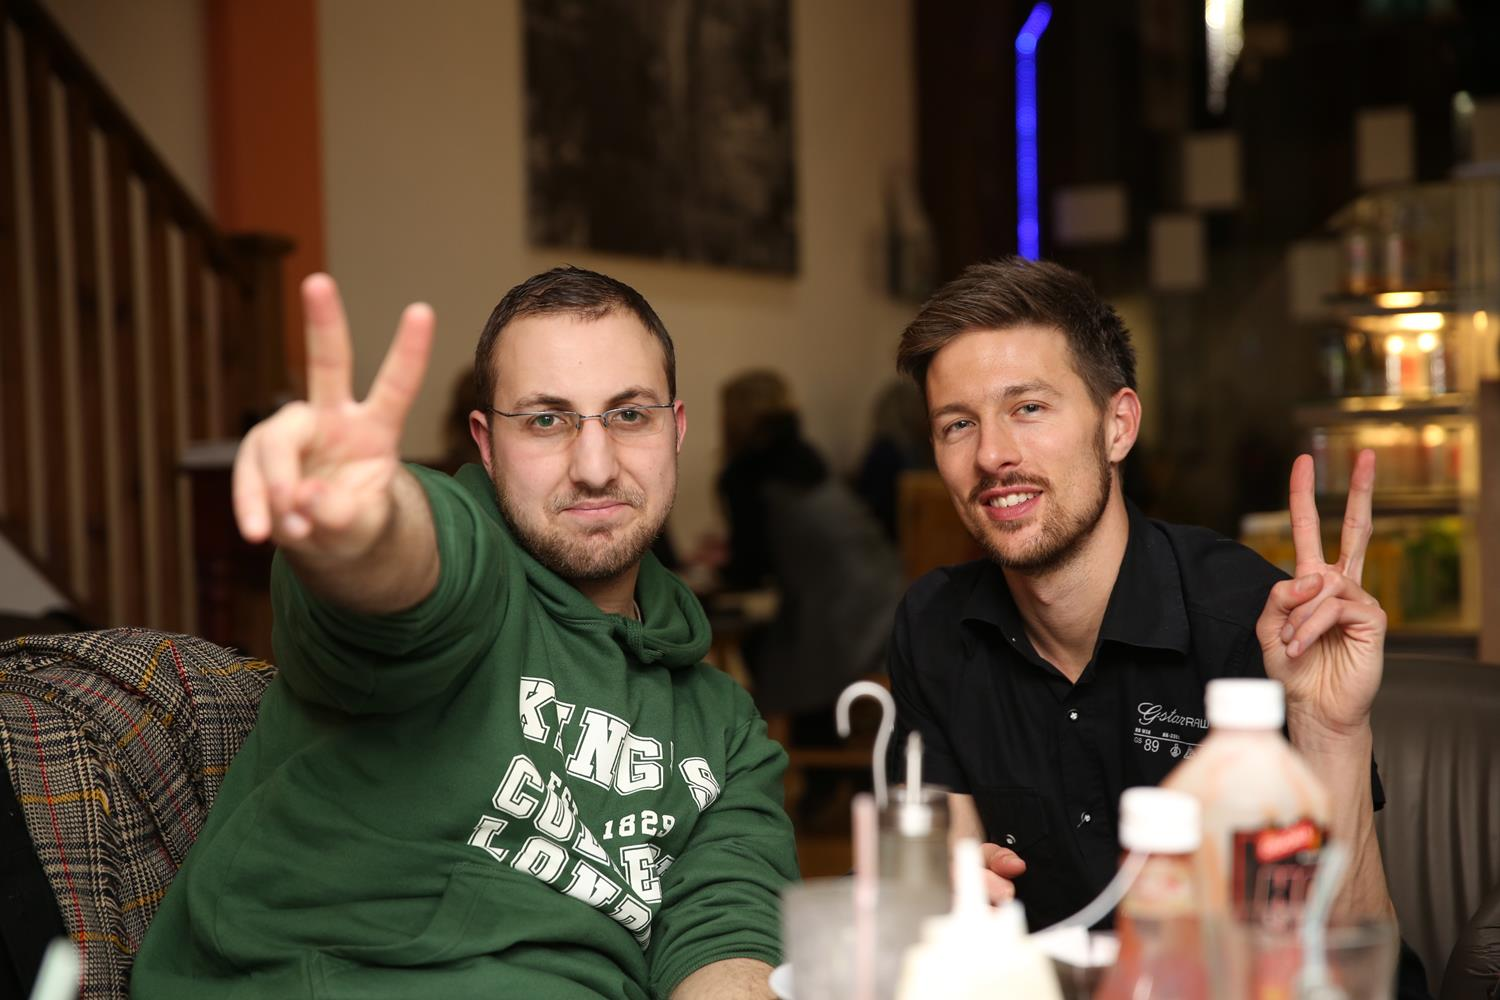 Two lads peace sign with hands by MAKSAM Photography